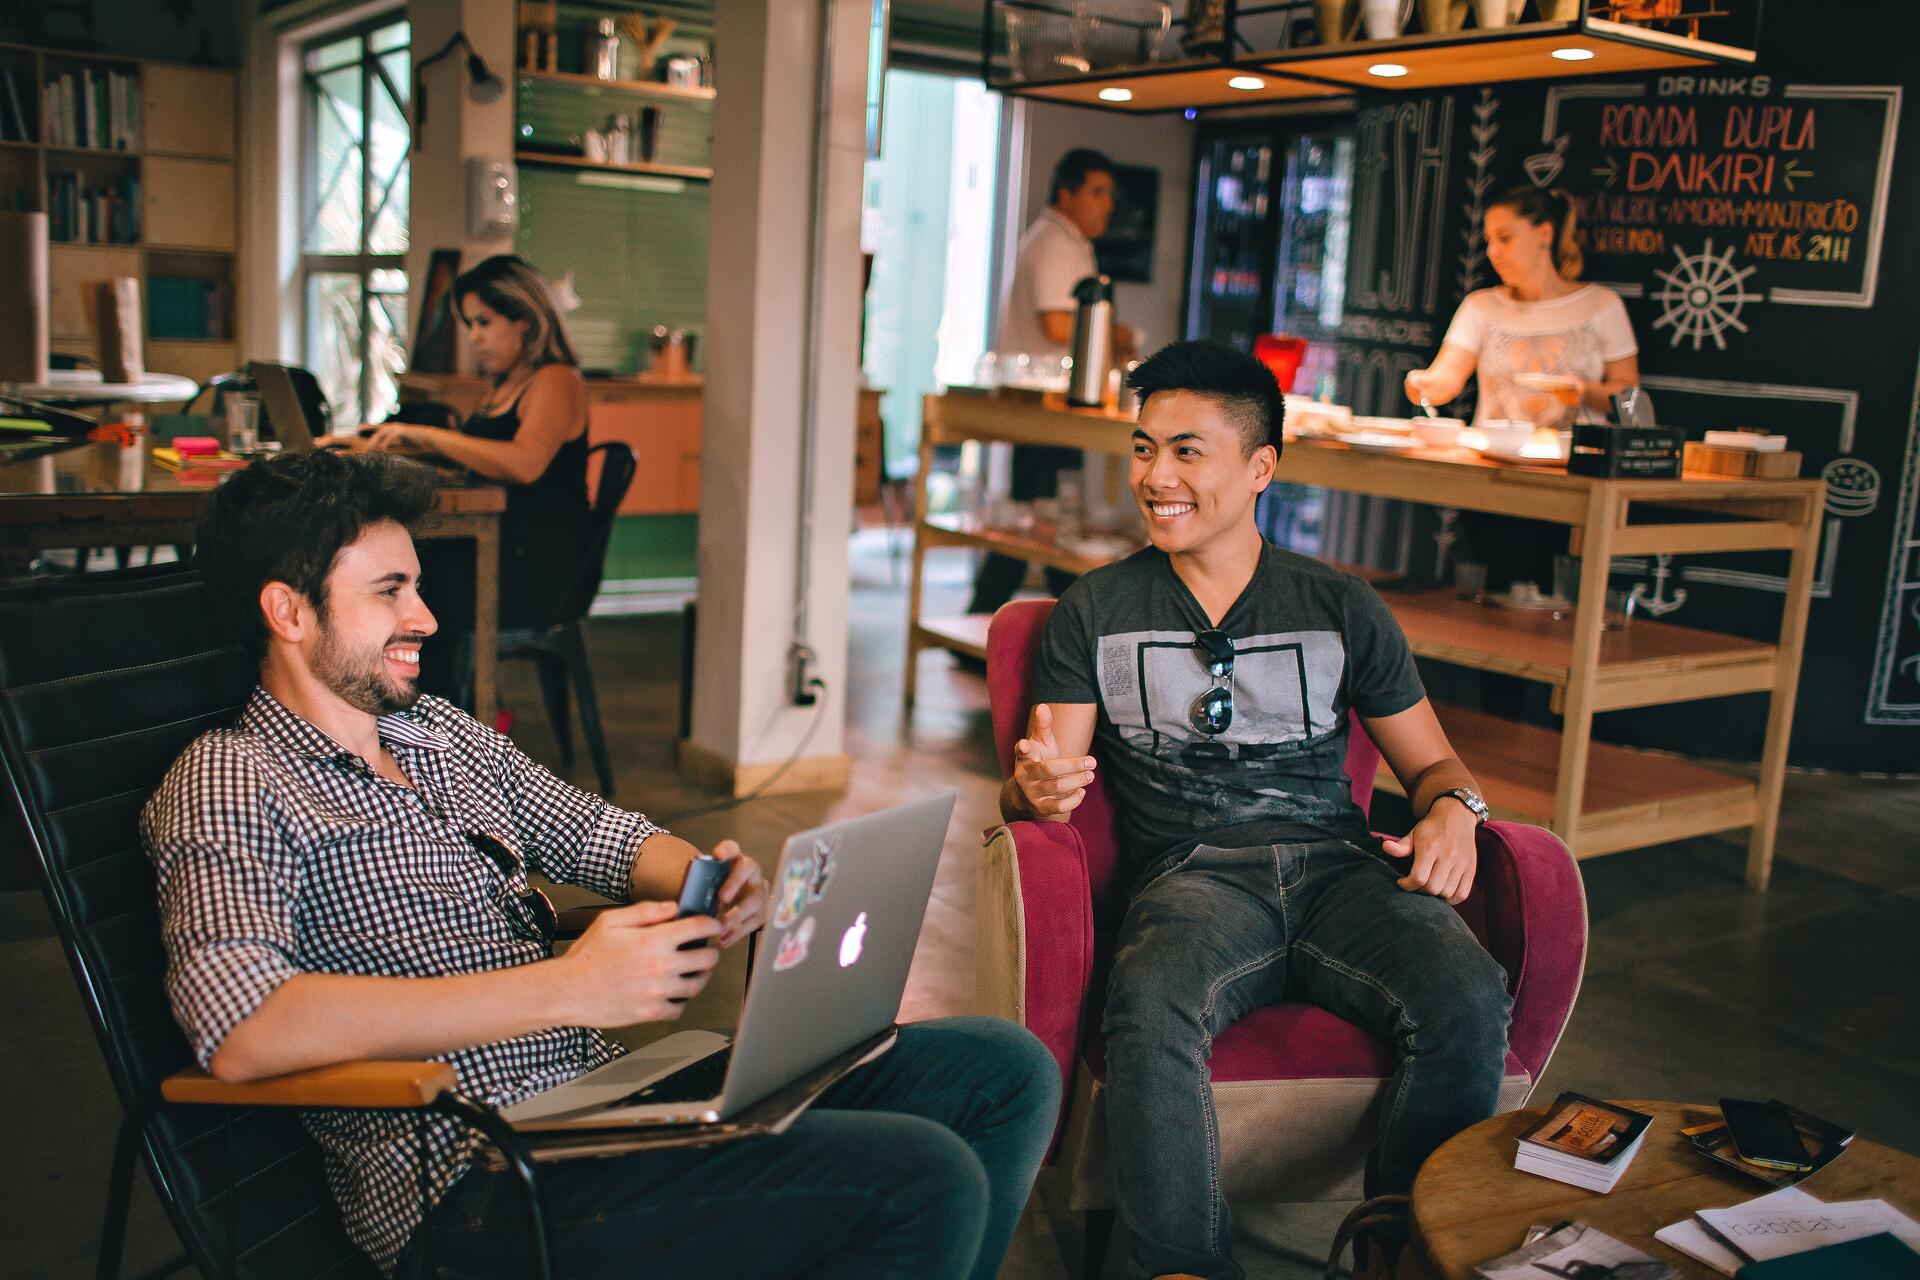 Two young men, one south Asian and one white, sit in a casual, artfully cluttered work space, smiling and talking about work.